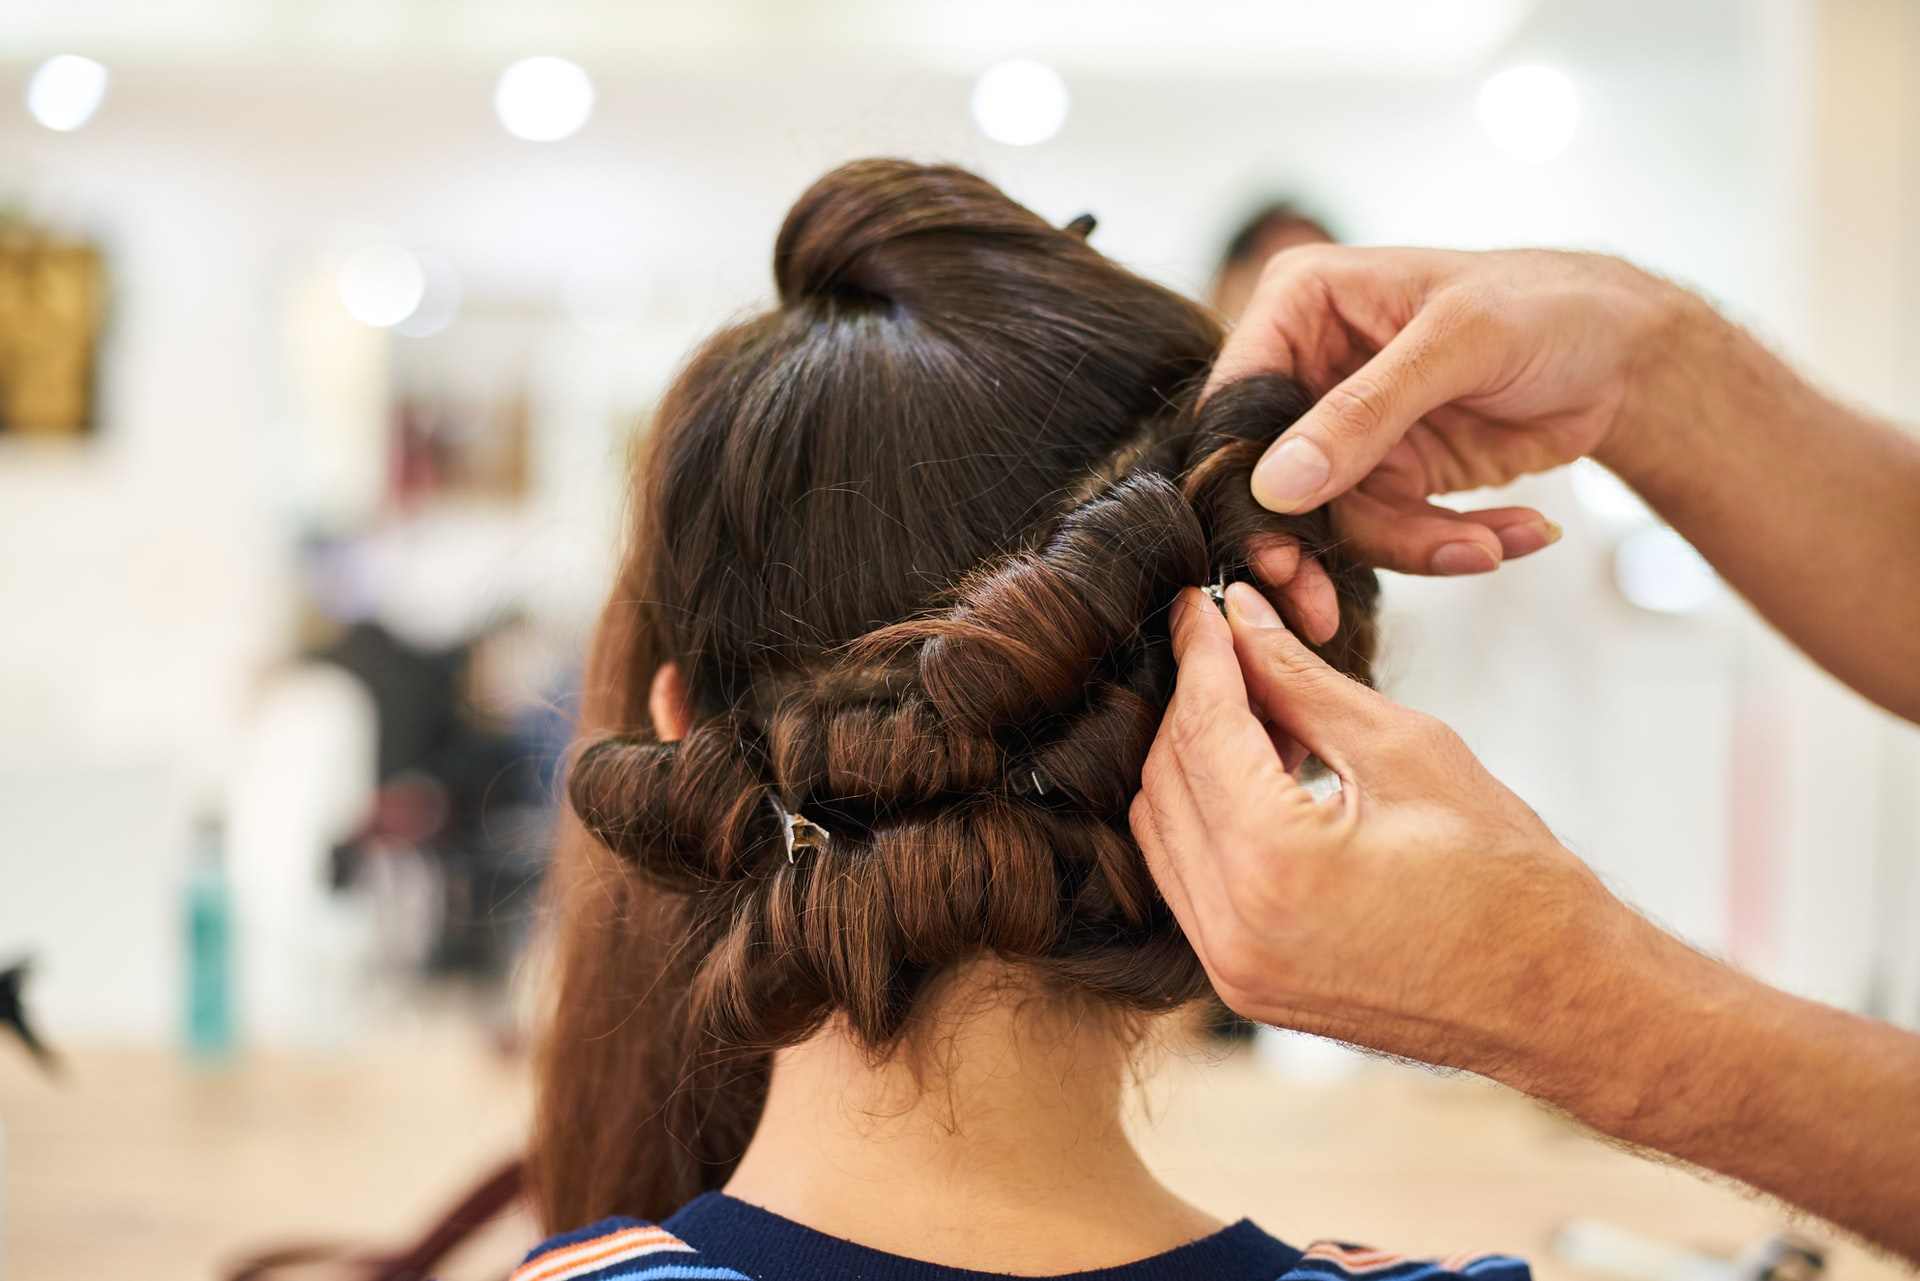 Top 10 Amazing Hair Styling Tips From Celebrity Stylists